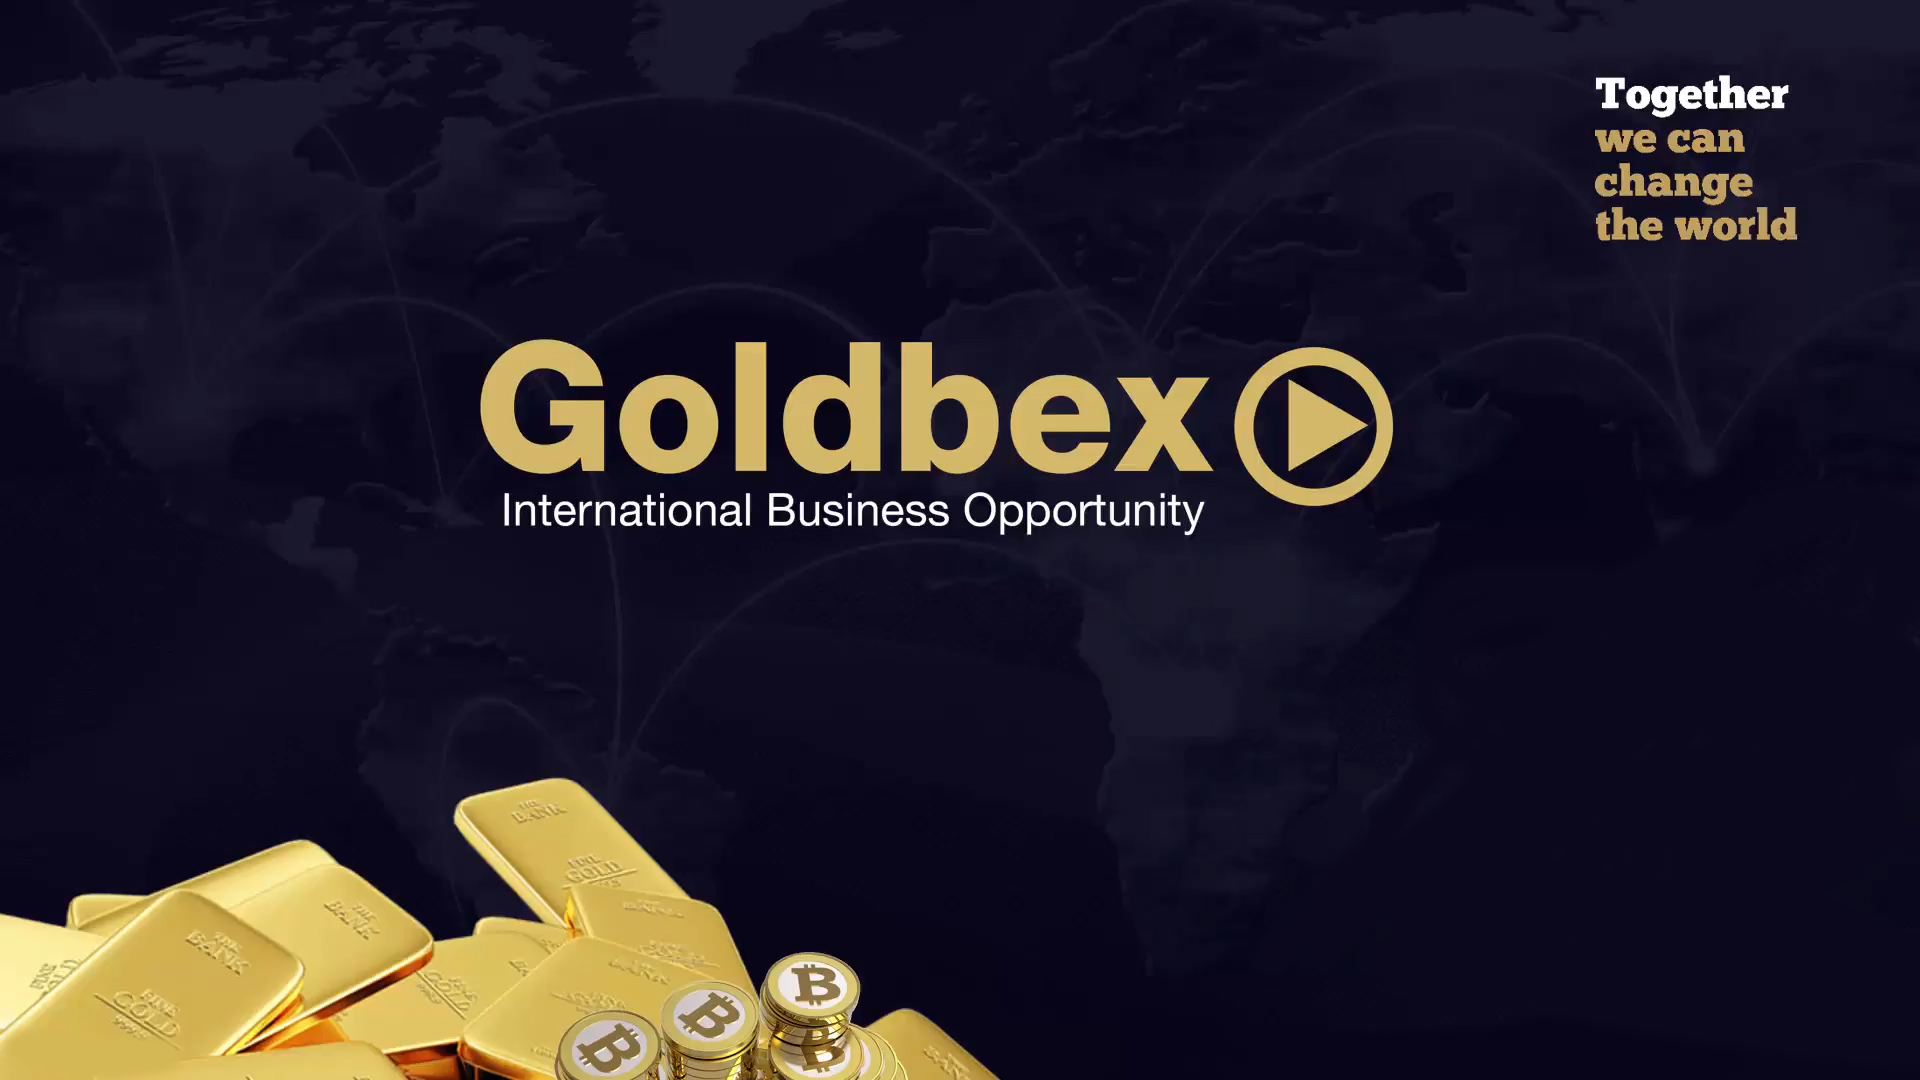 Goldbex Official Presentation